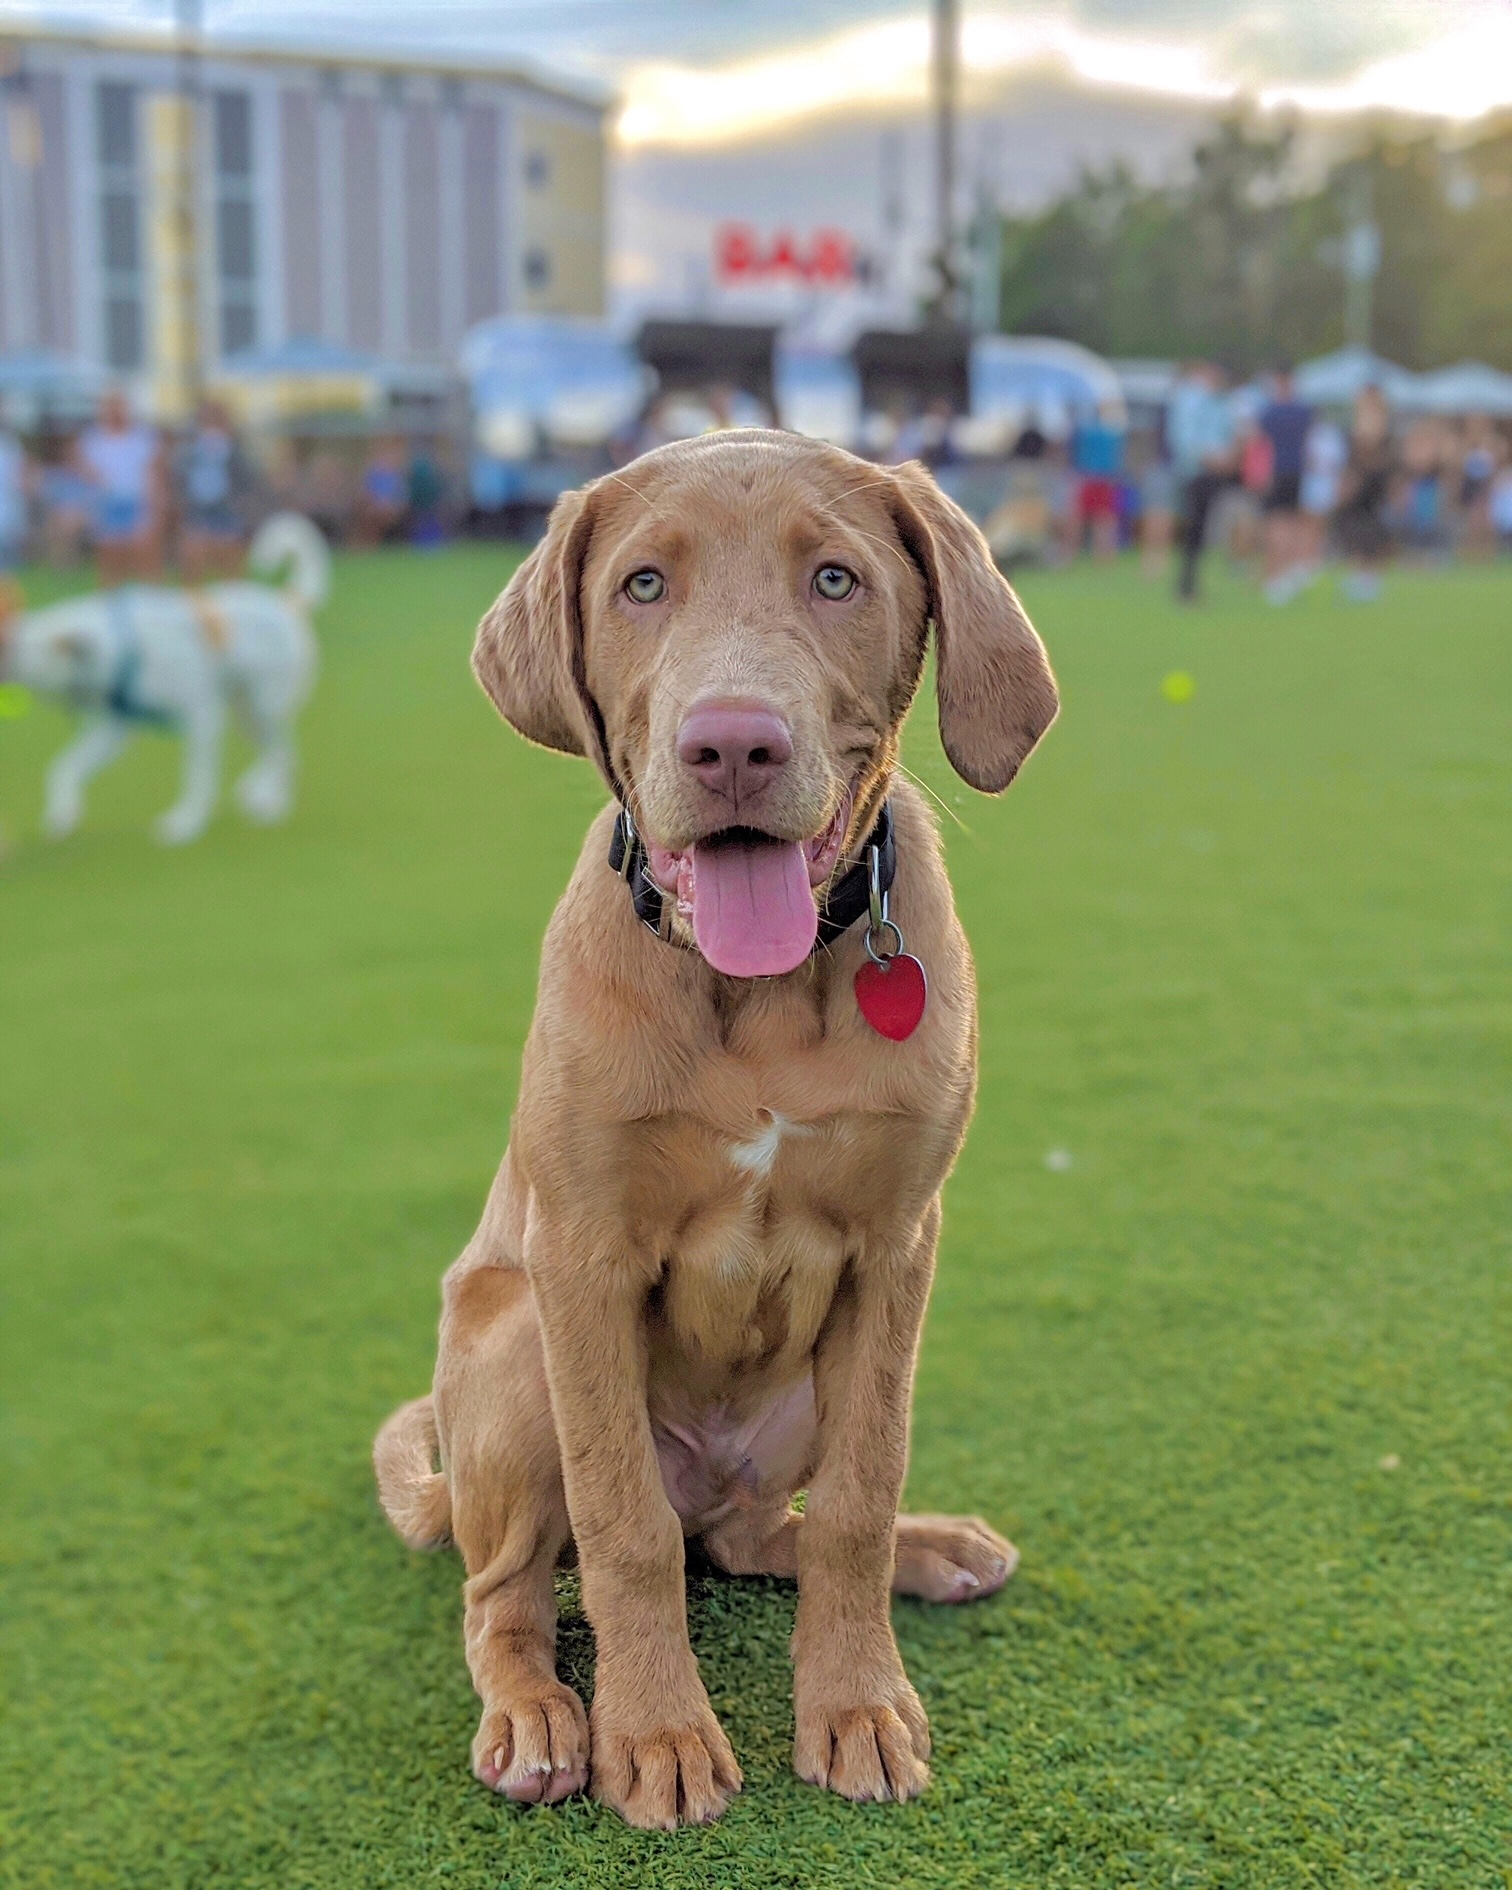 A young hound dog with light brown fur and blue eyes sits on a green grassy lawn at Fetch dog park. He stares into the camera smiling with his big pink tongue sticking out and a red id tag hanging off the collar